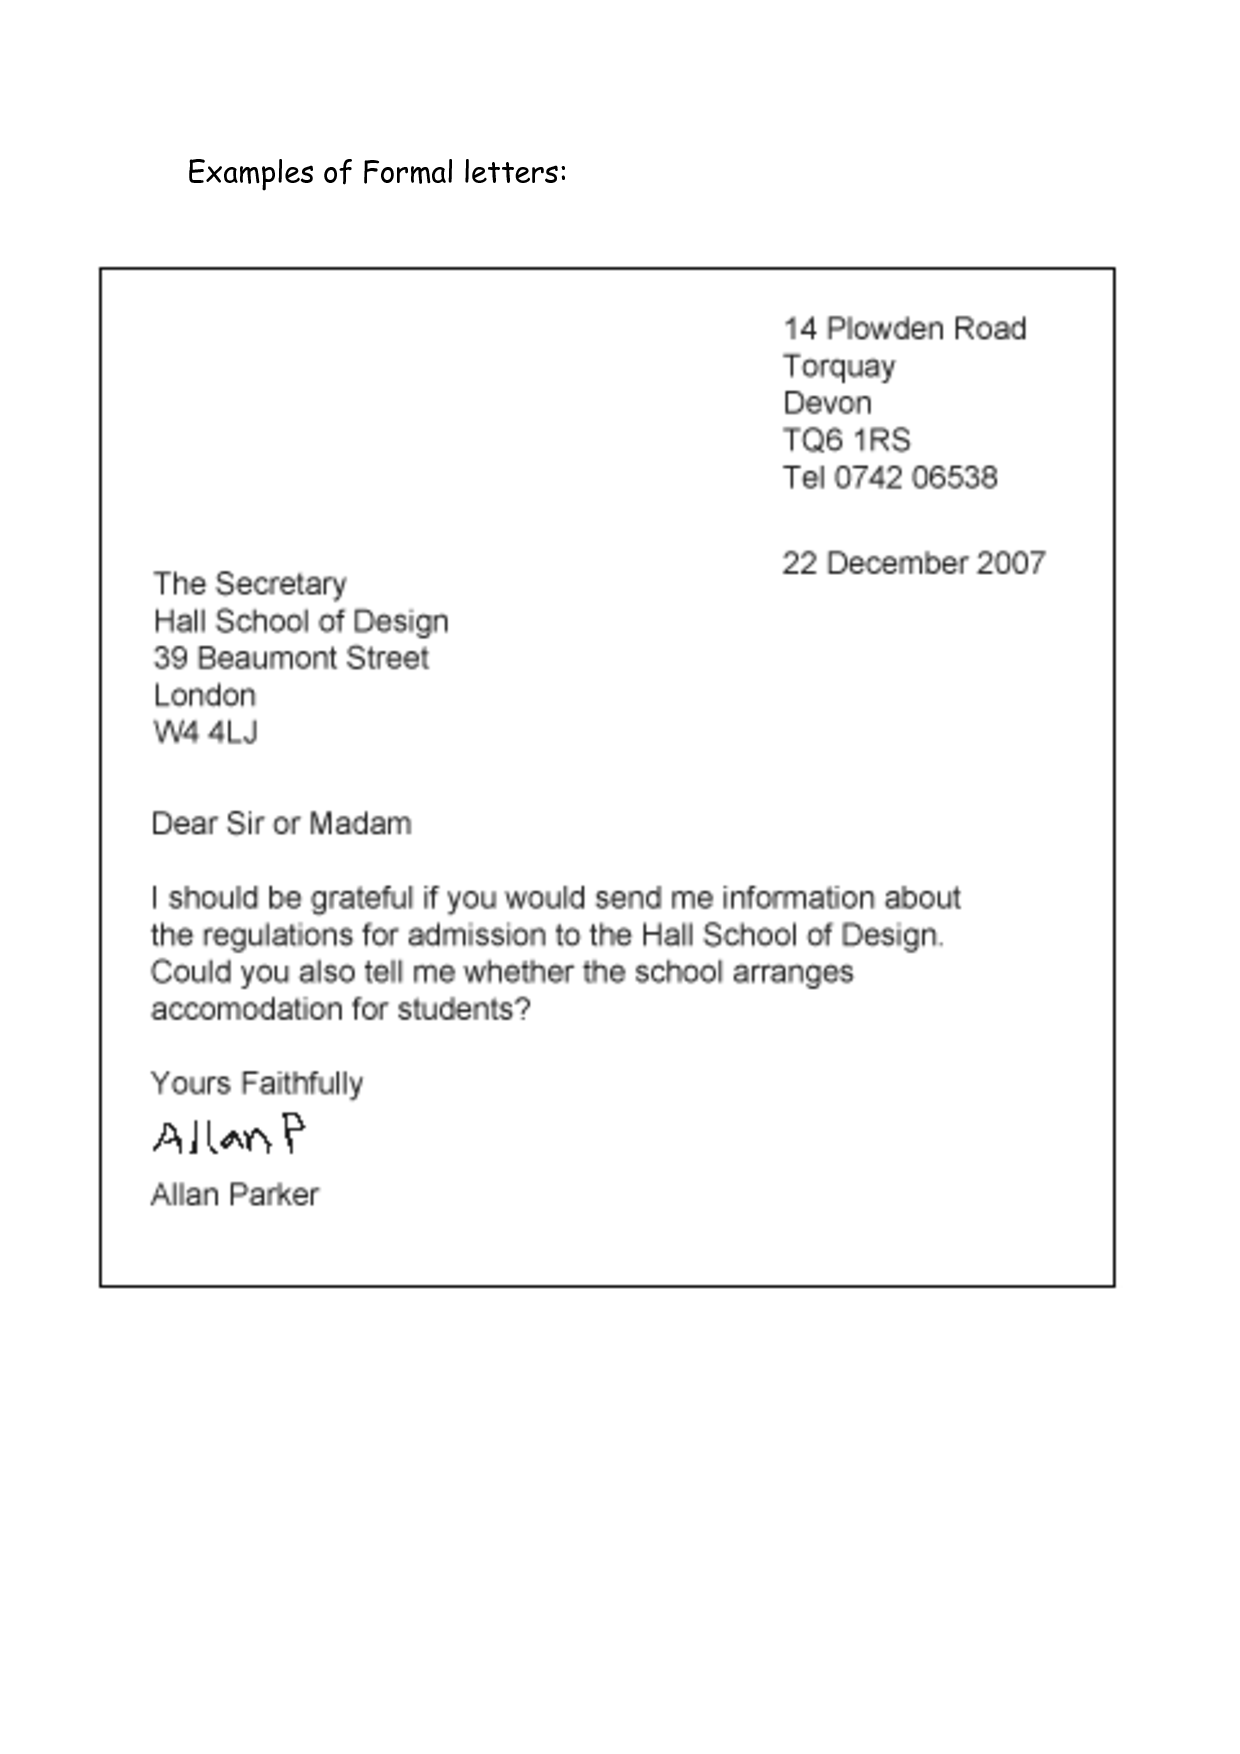 Formal letter example Business letter format, Formal